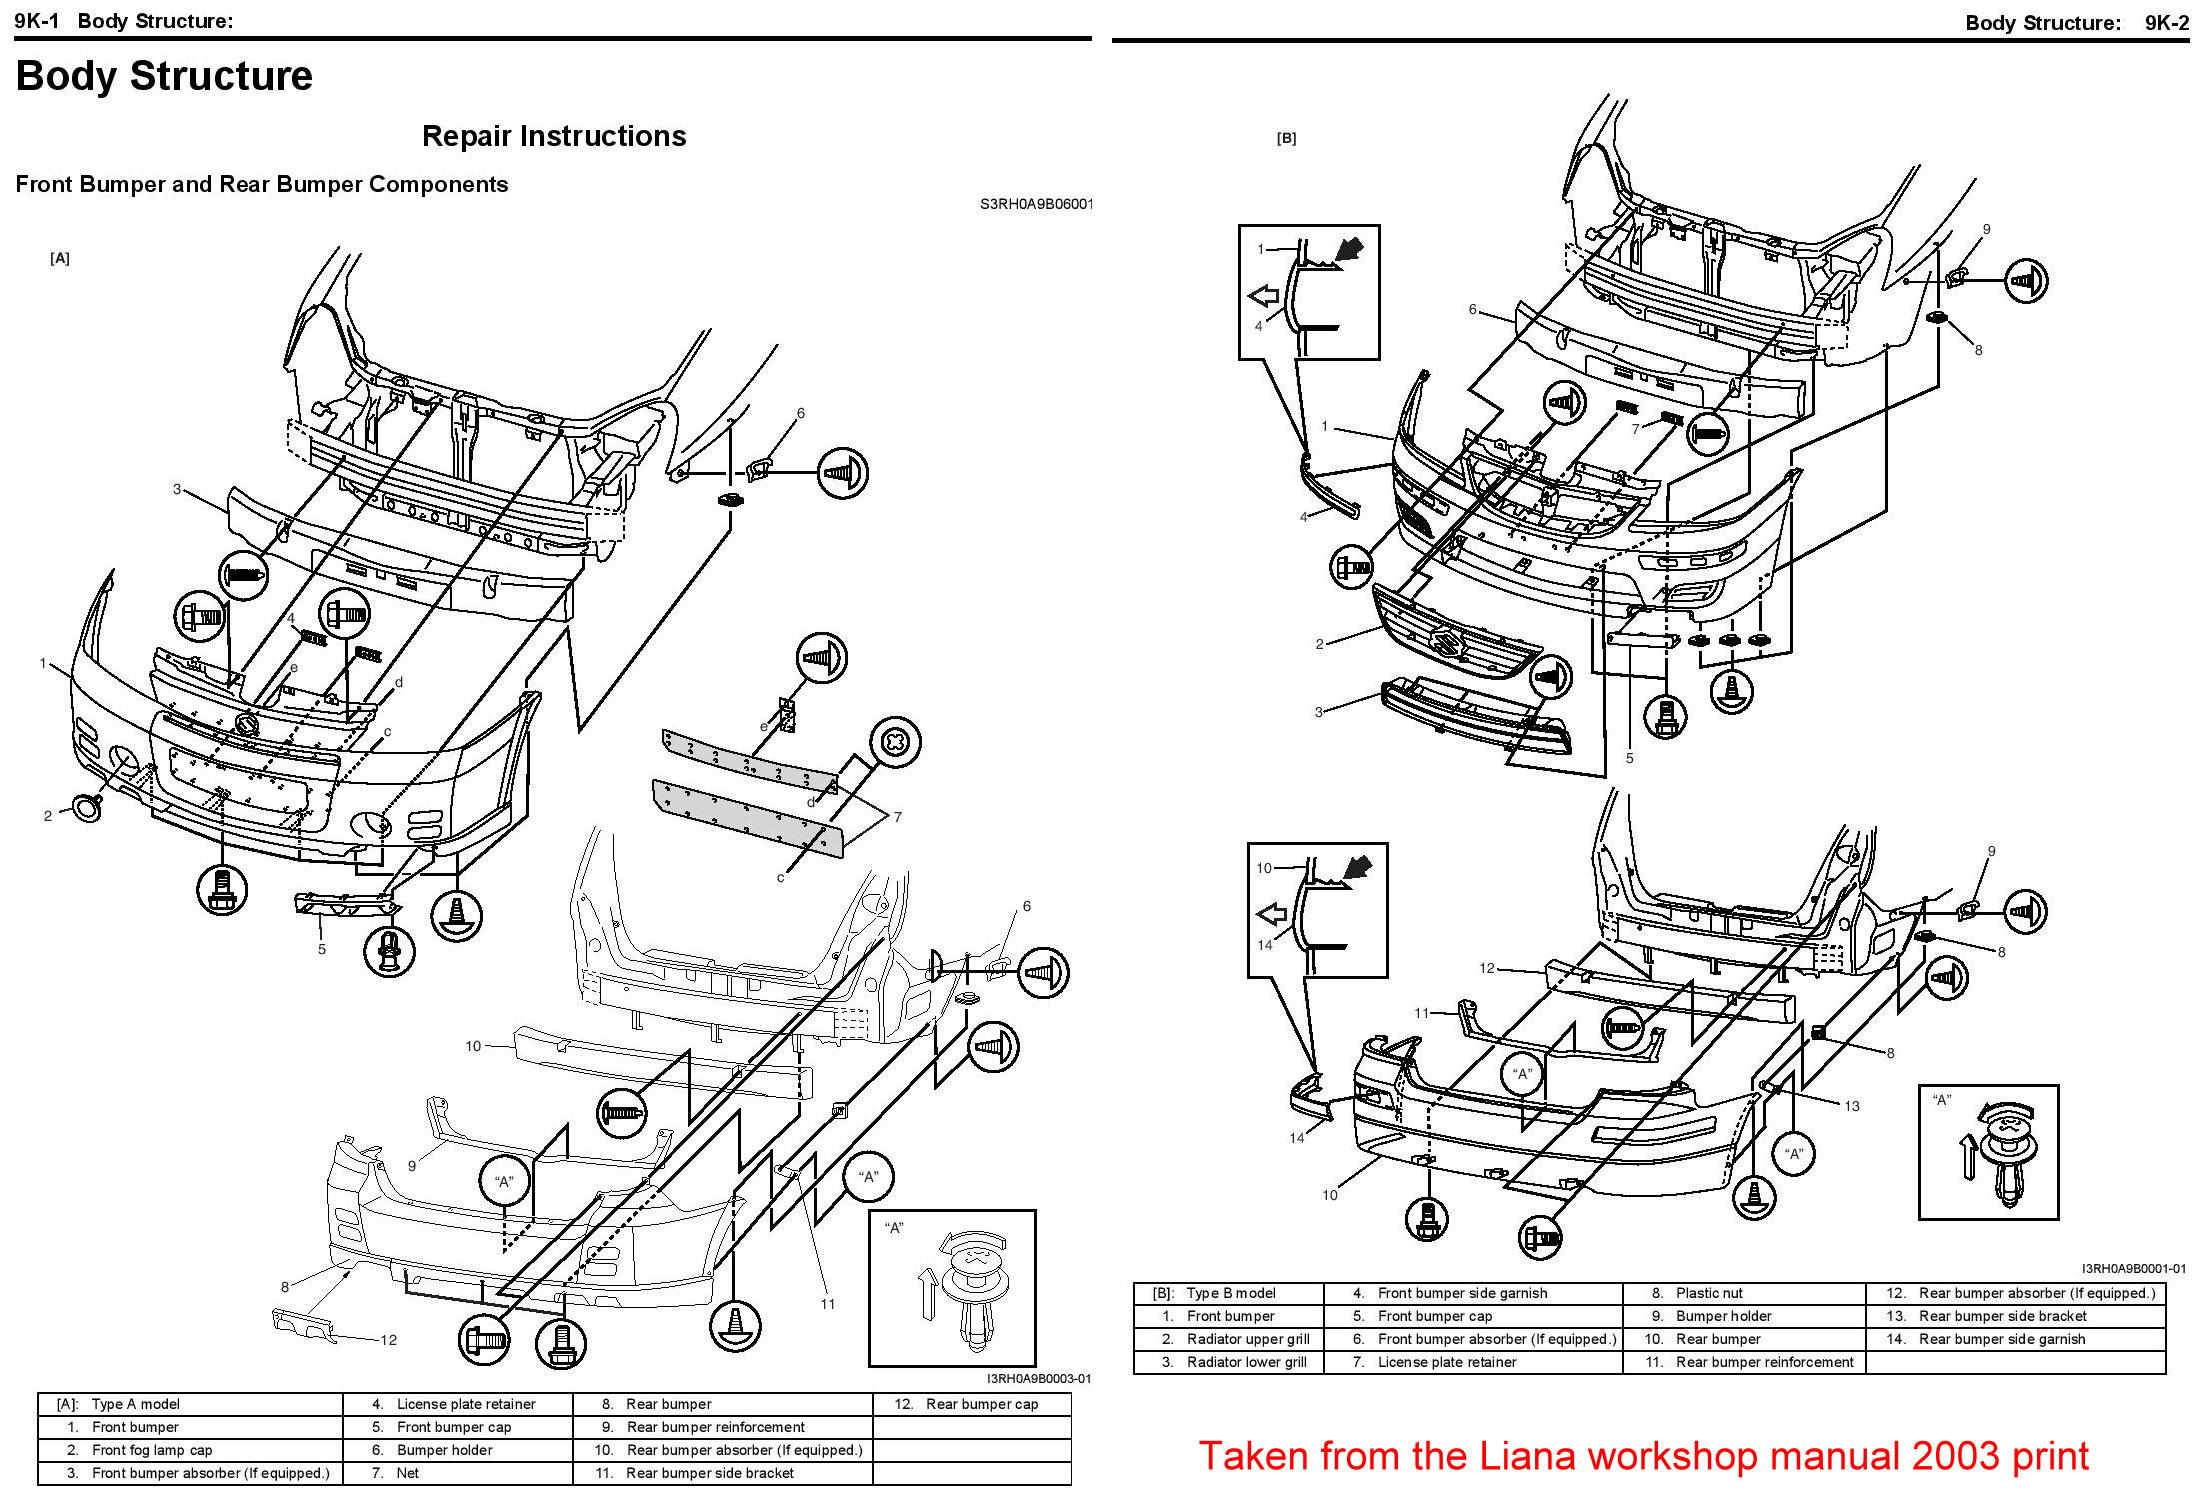 Service manual [Bottom Panel Removal 2004 Suzuki Aerio